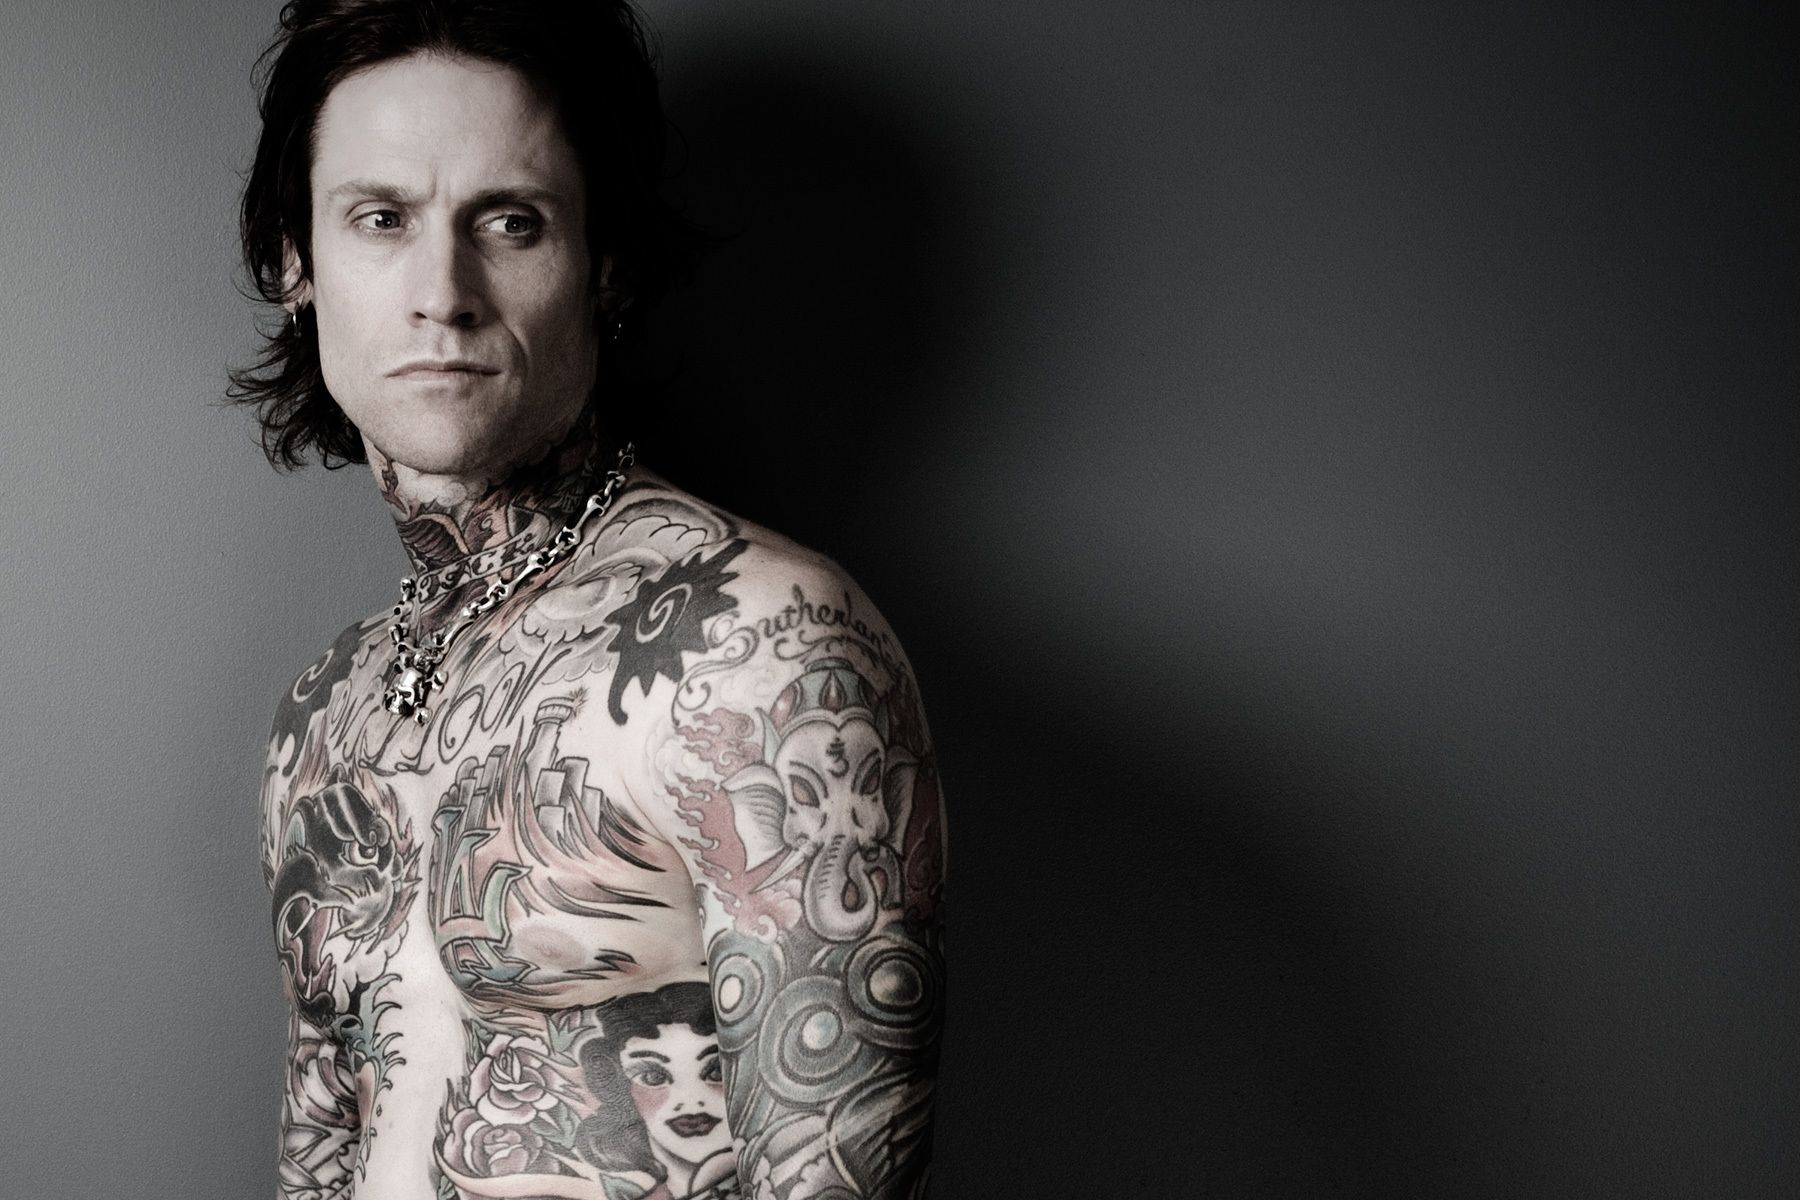 8_0_115_1buckcherry3.jpg